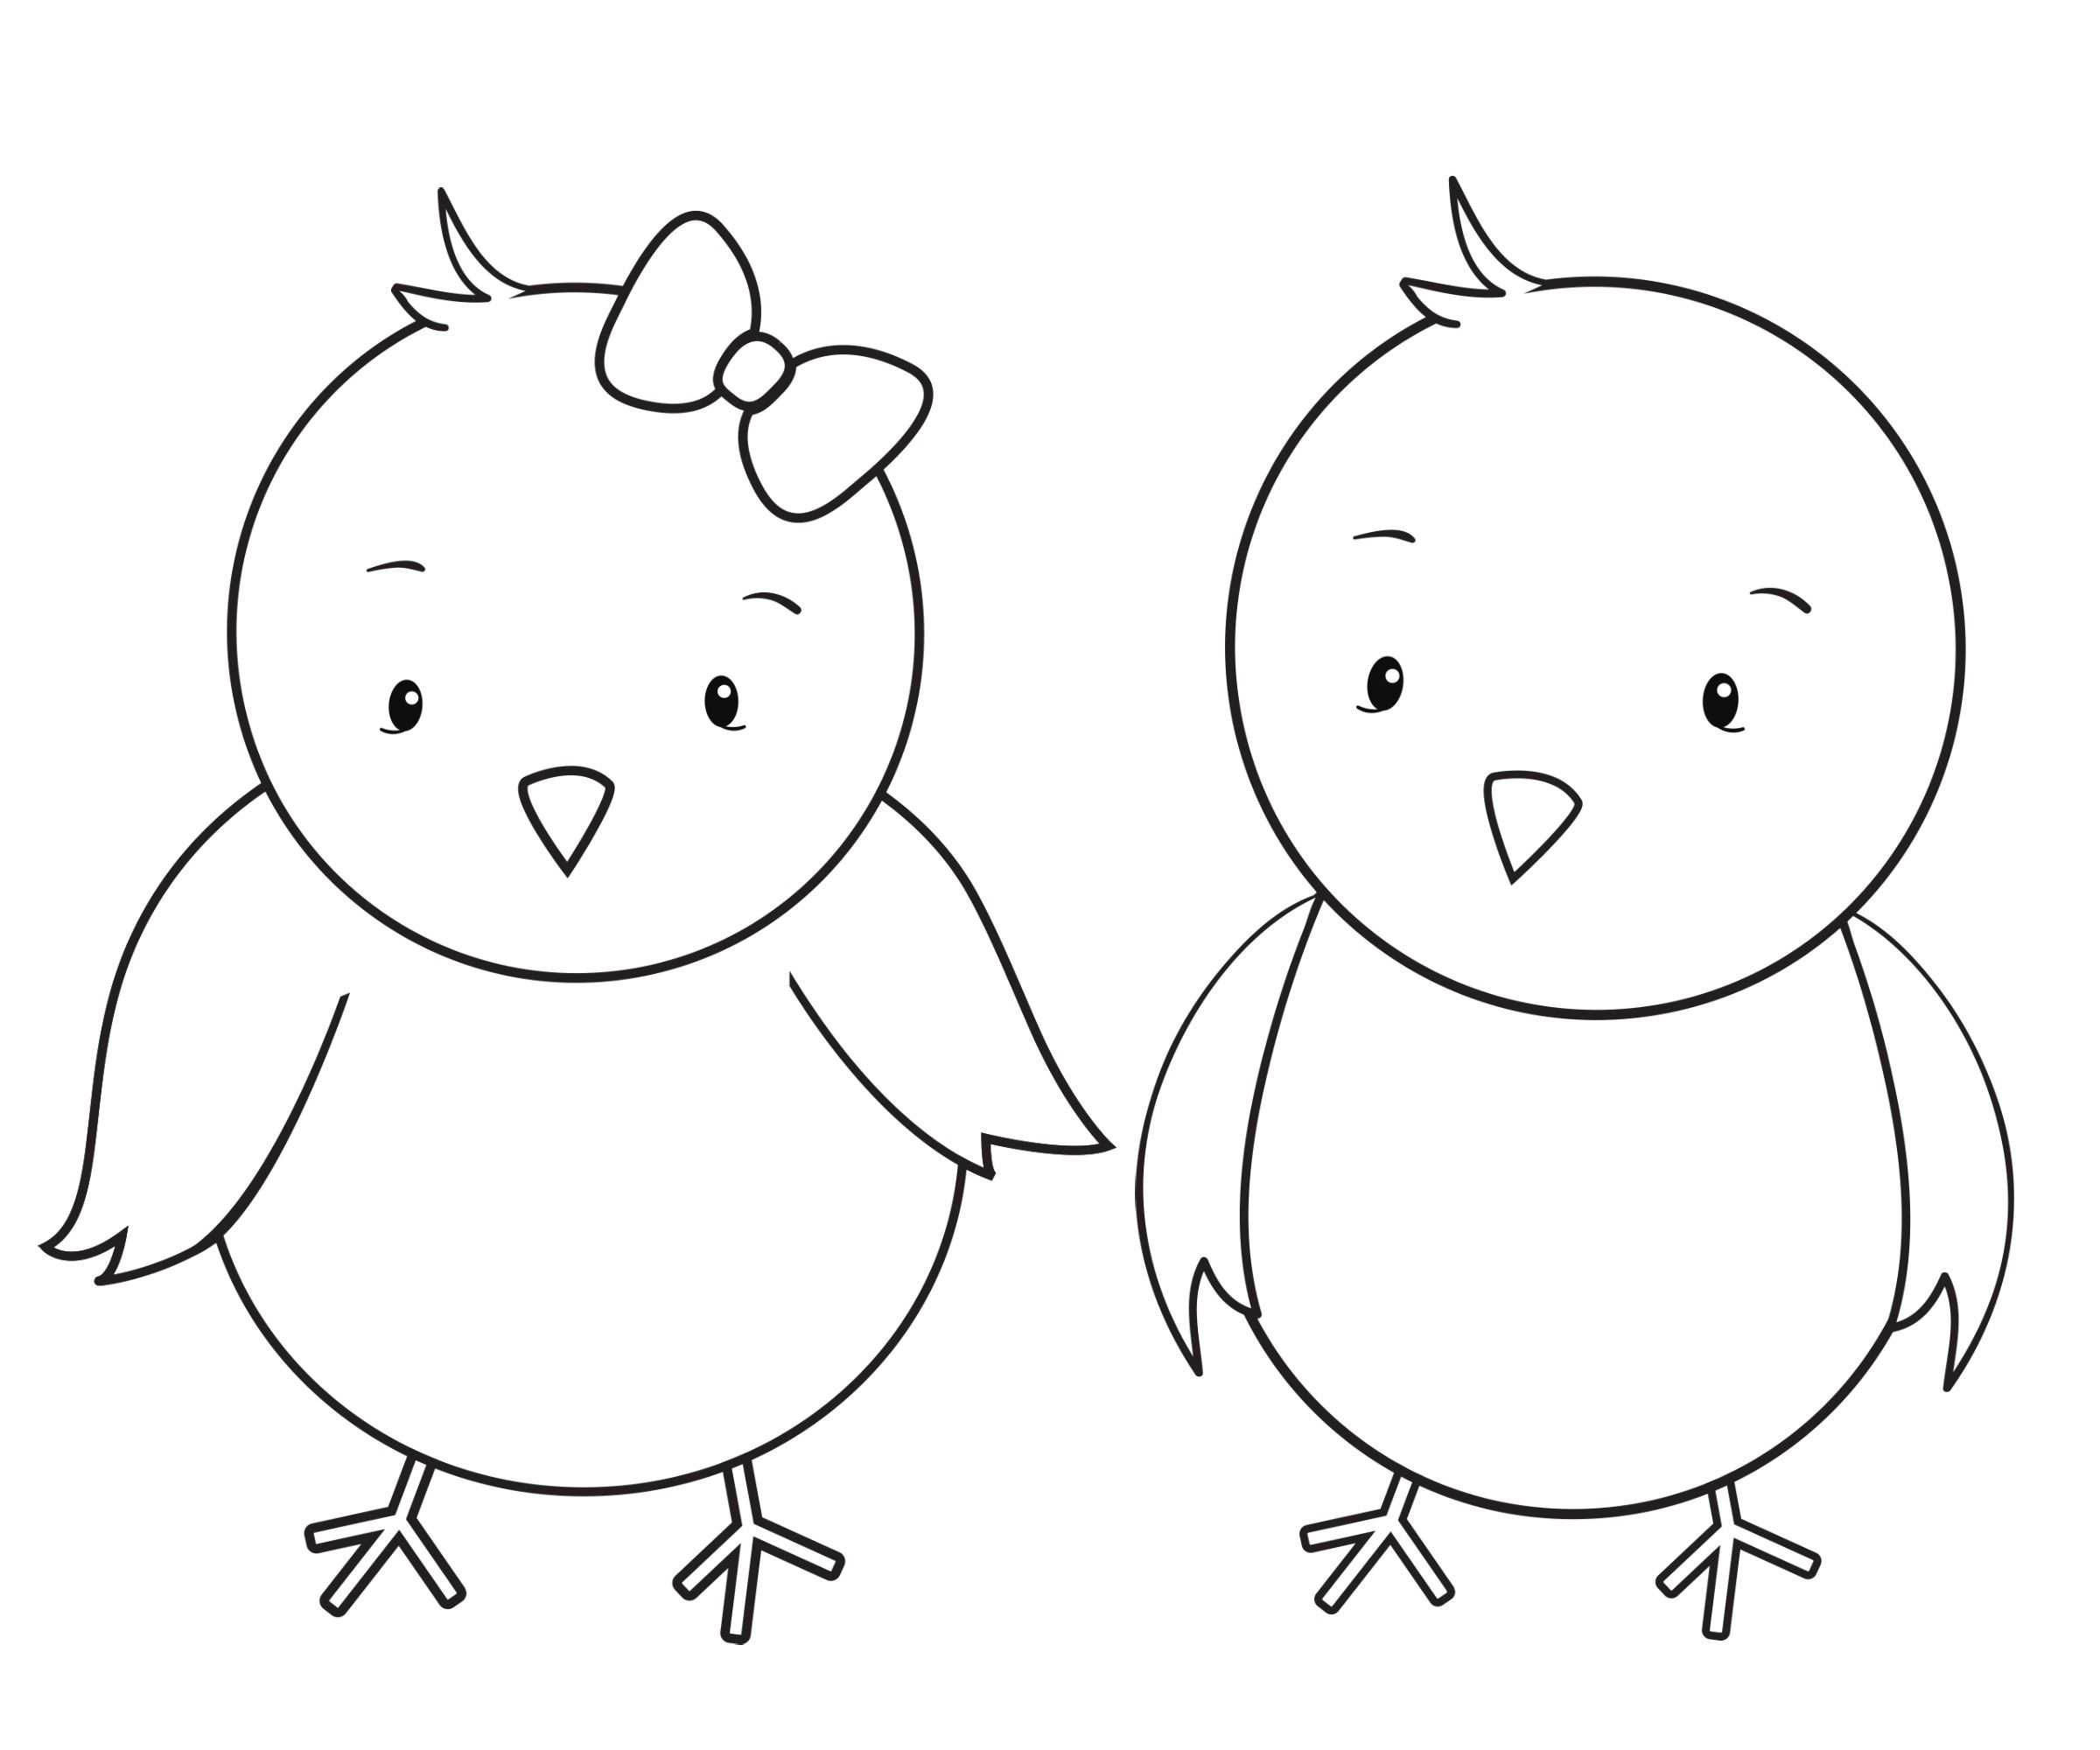 Easter Chicks Coloring Page - Part 3